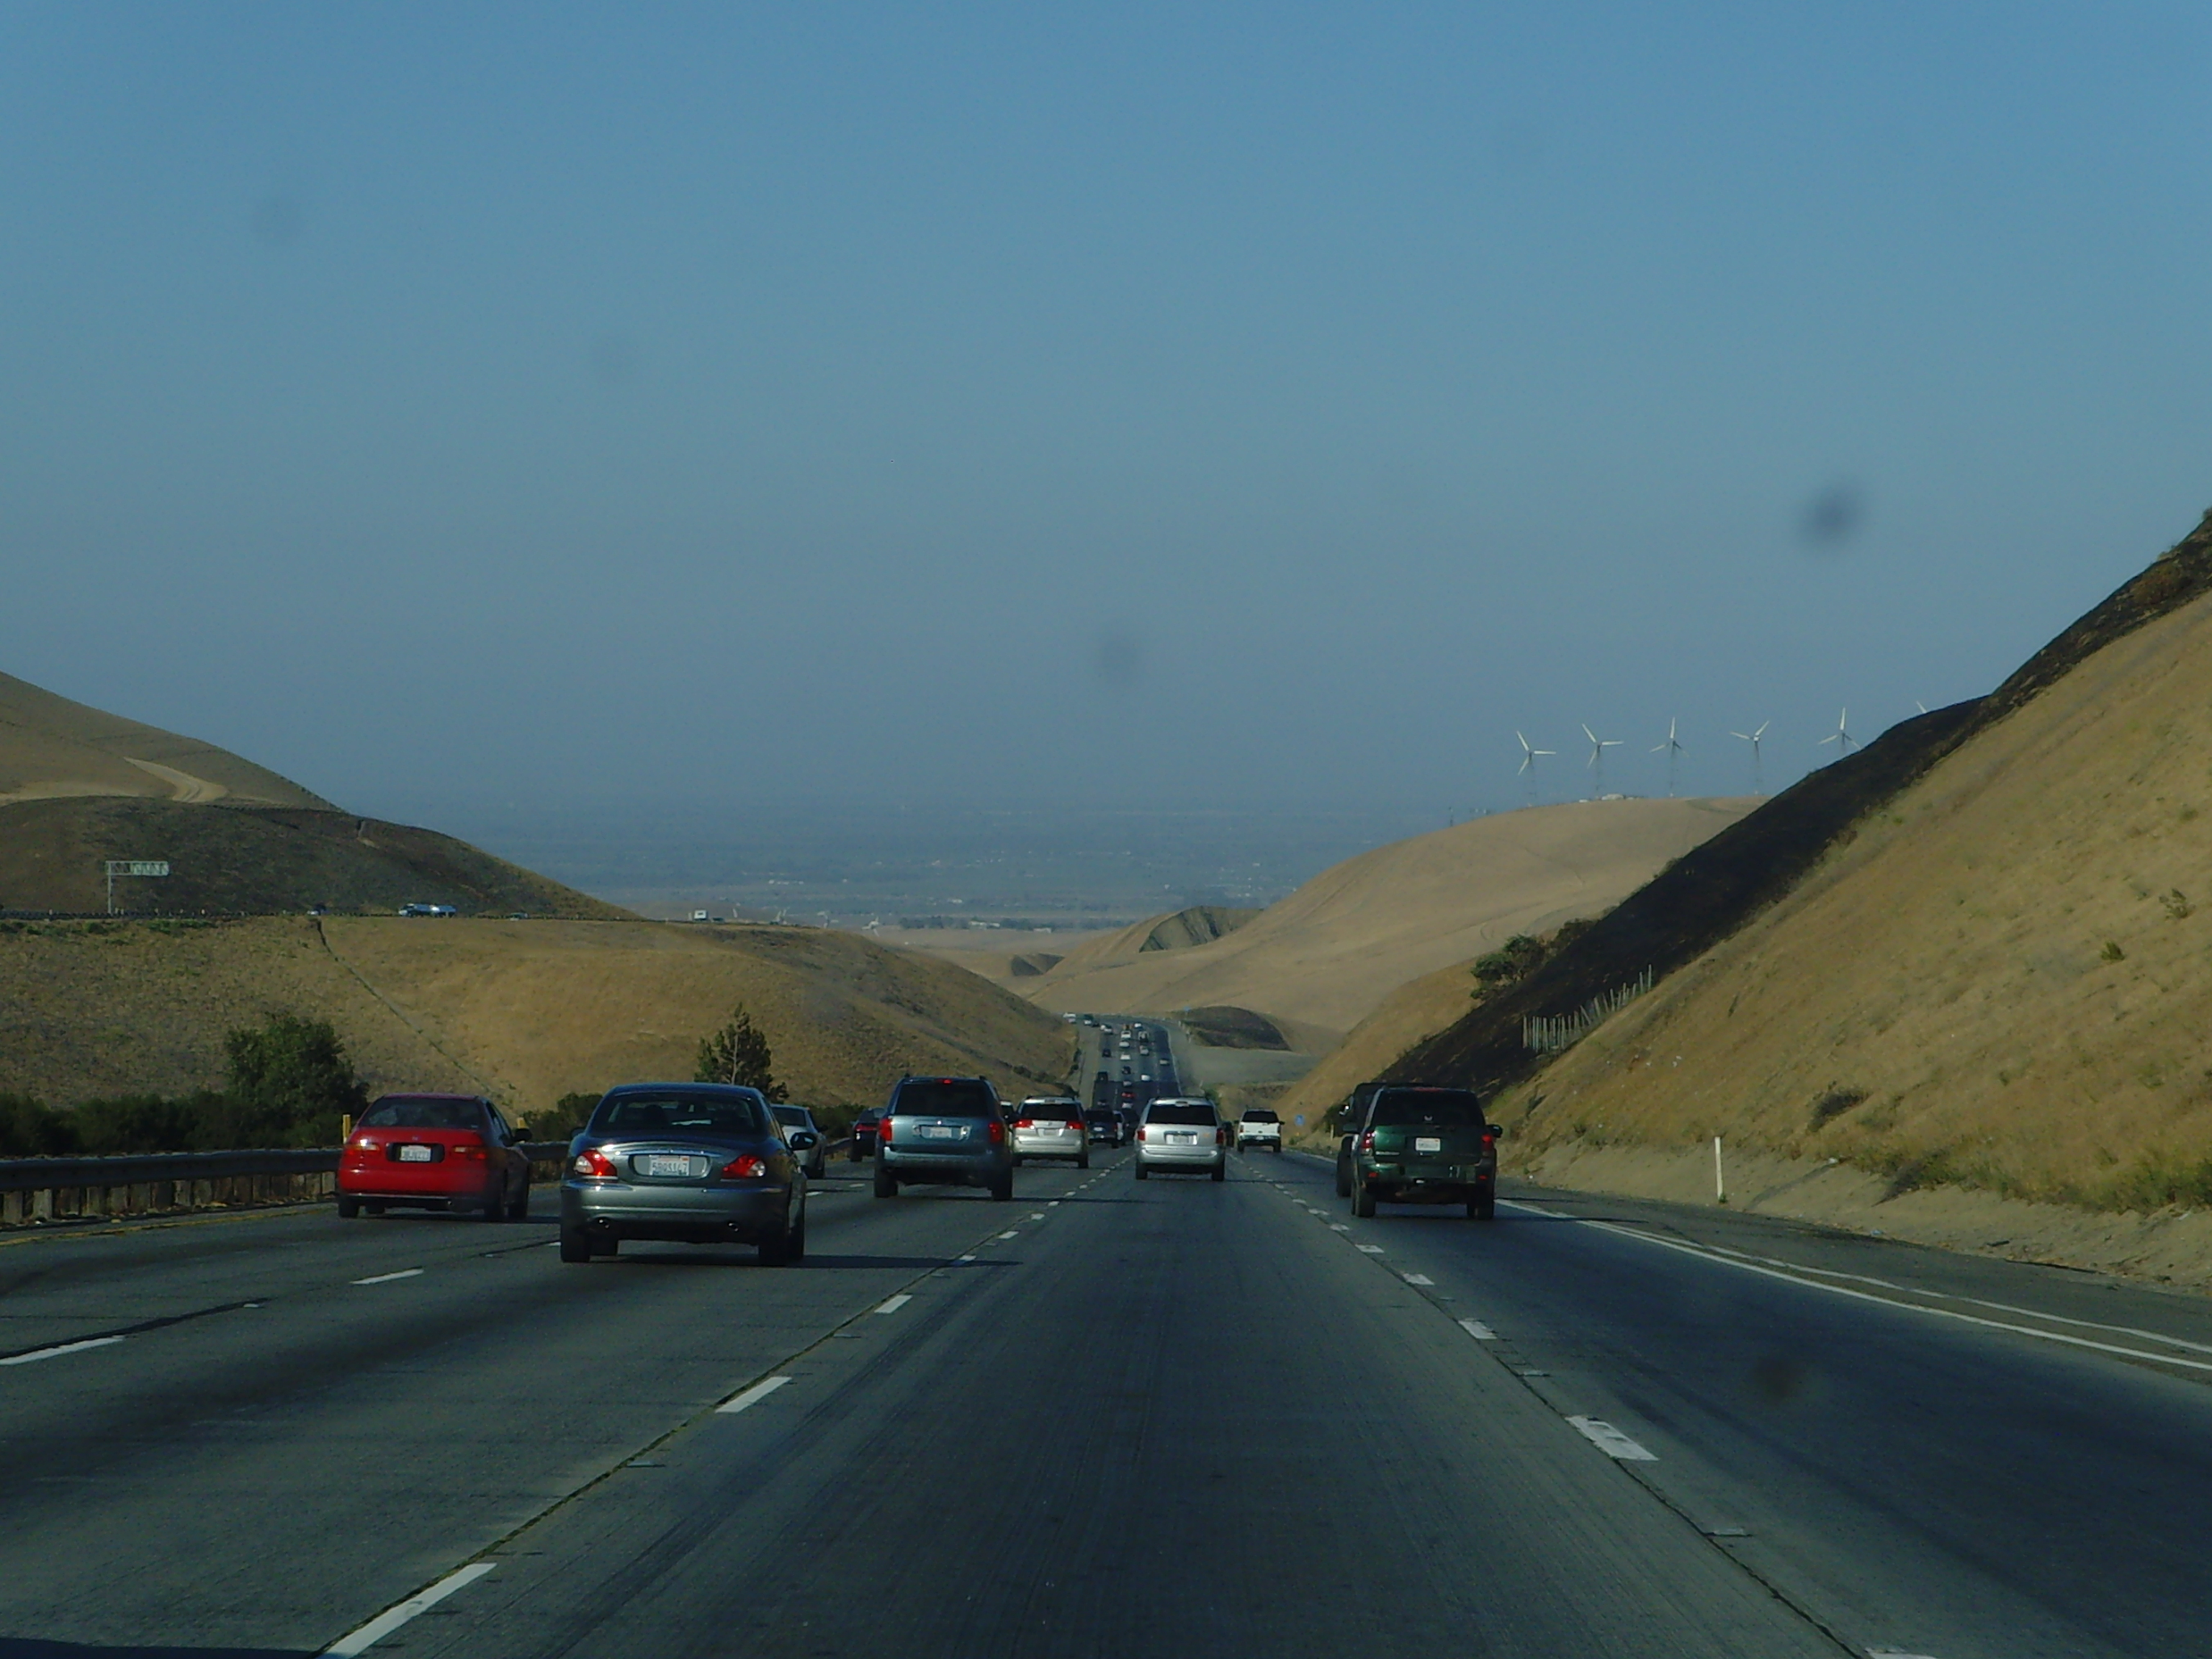 Interstate_580_near_Tracy,_California